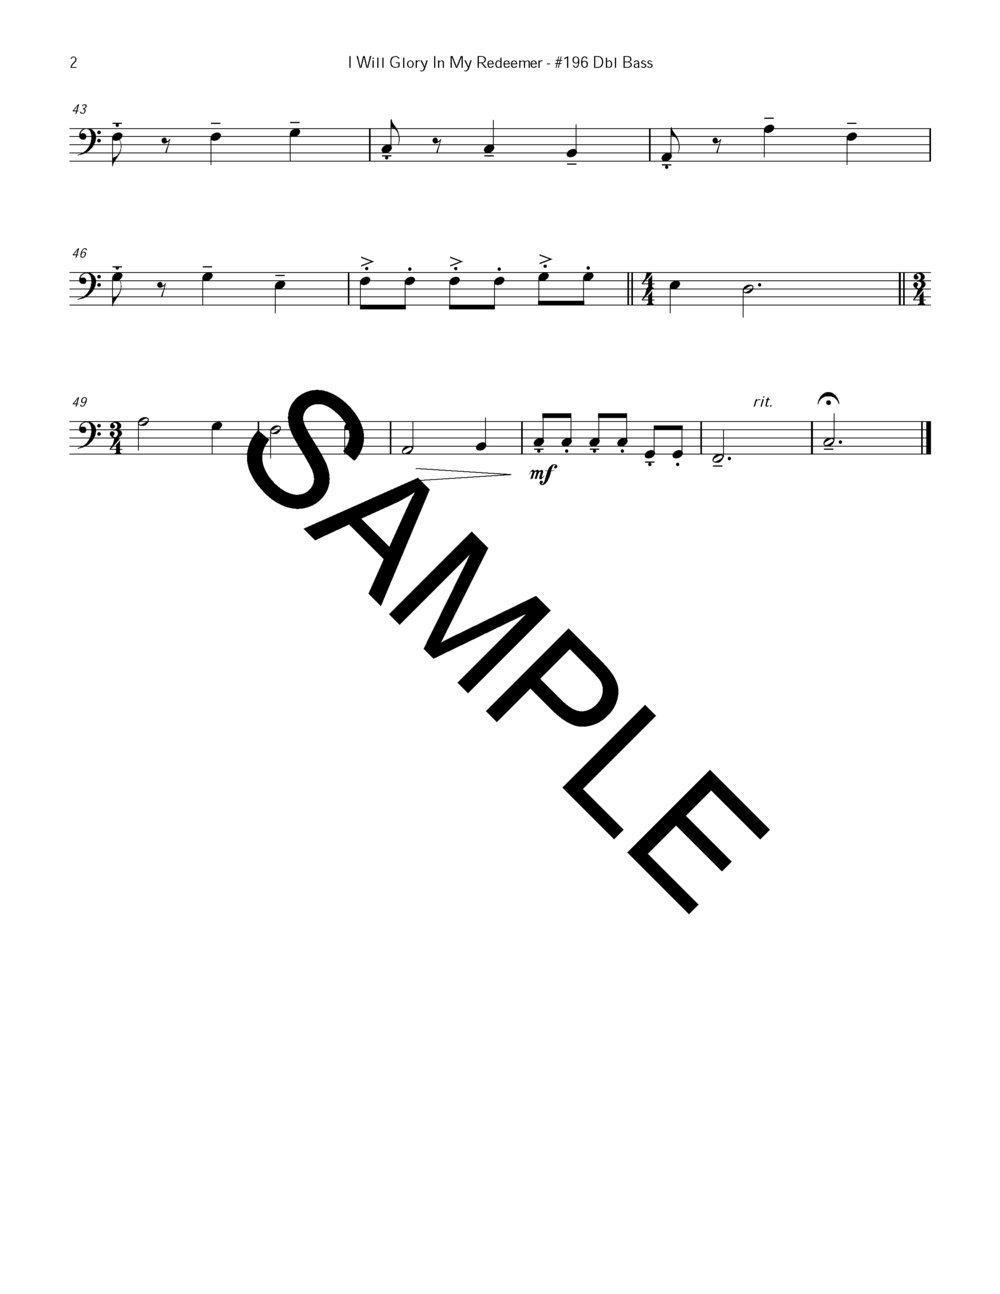 Sample I Will Glory in My Redeemer #196 Strngs Ob Piano Chrd Chrt Orgn M Rice arr_Page_10.jpg